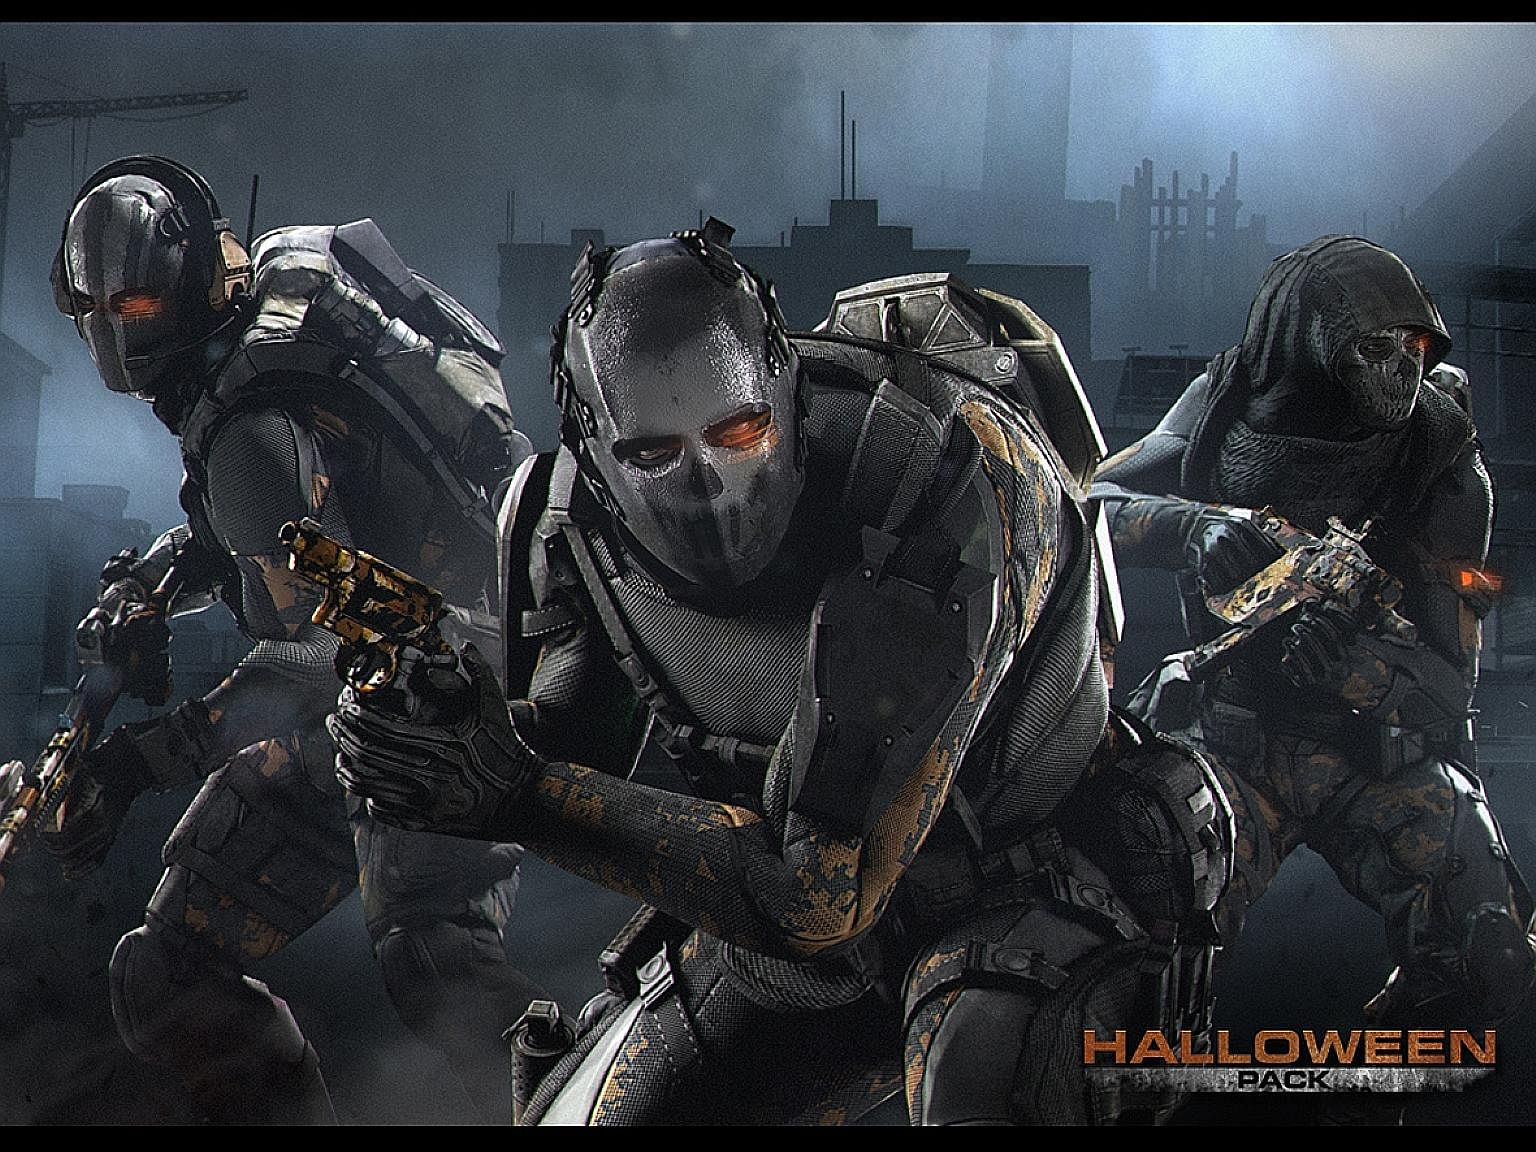 Singapore- designed game to give up the Ghost, Games & Apps ... on ghosts xbox 360 maps, ninja gaiden maps, recon training map maps, runescape maps, raven shield maps, ghost games, rainbow 6 vegas 2 maps, delta force maps, ghost soldiers, rainbow six vegas maps,